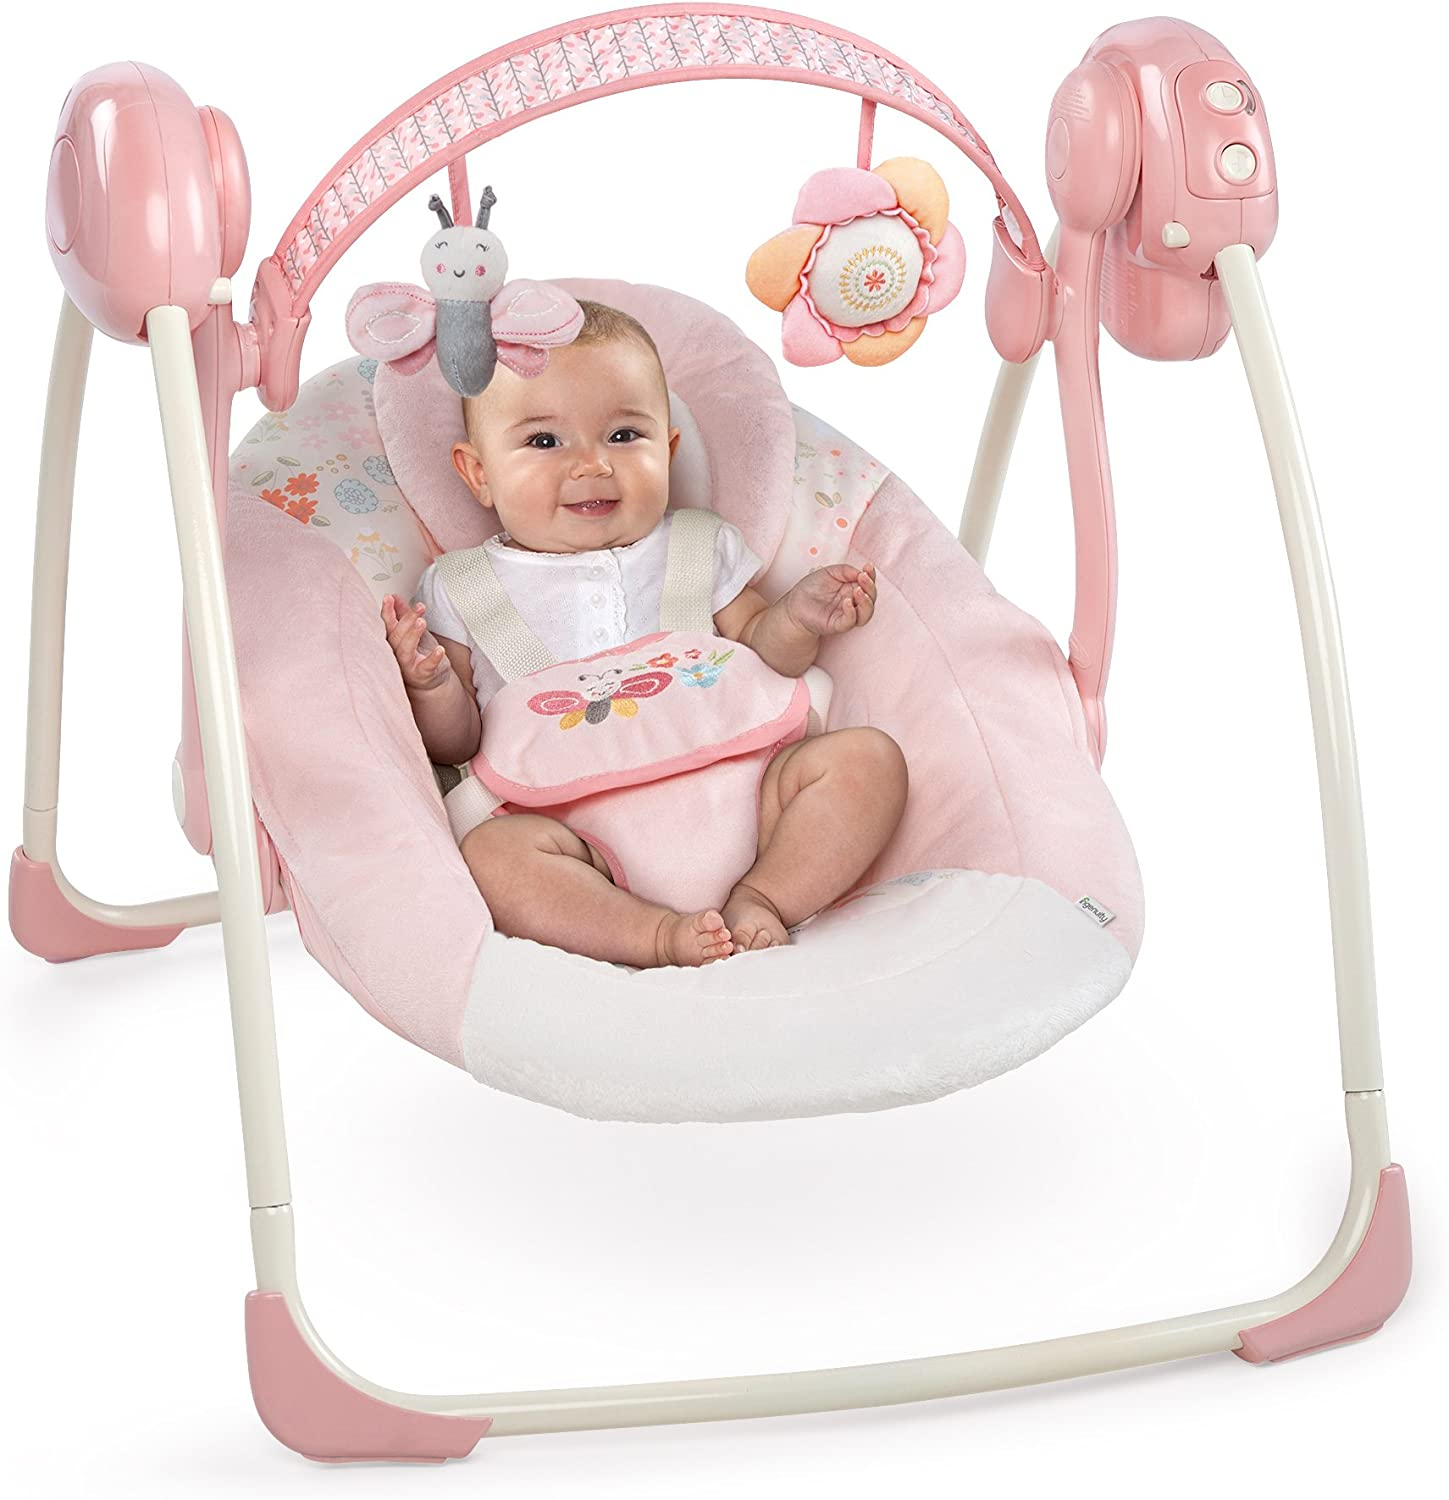 Felicity Floral Ingenuity Bright Starts Soothe N Delight Portable Swing